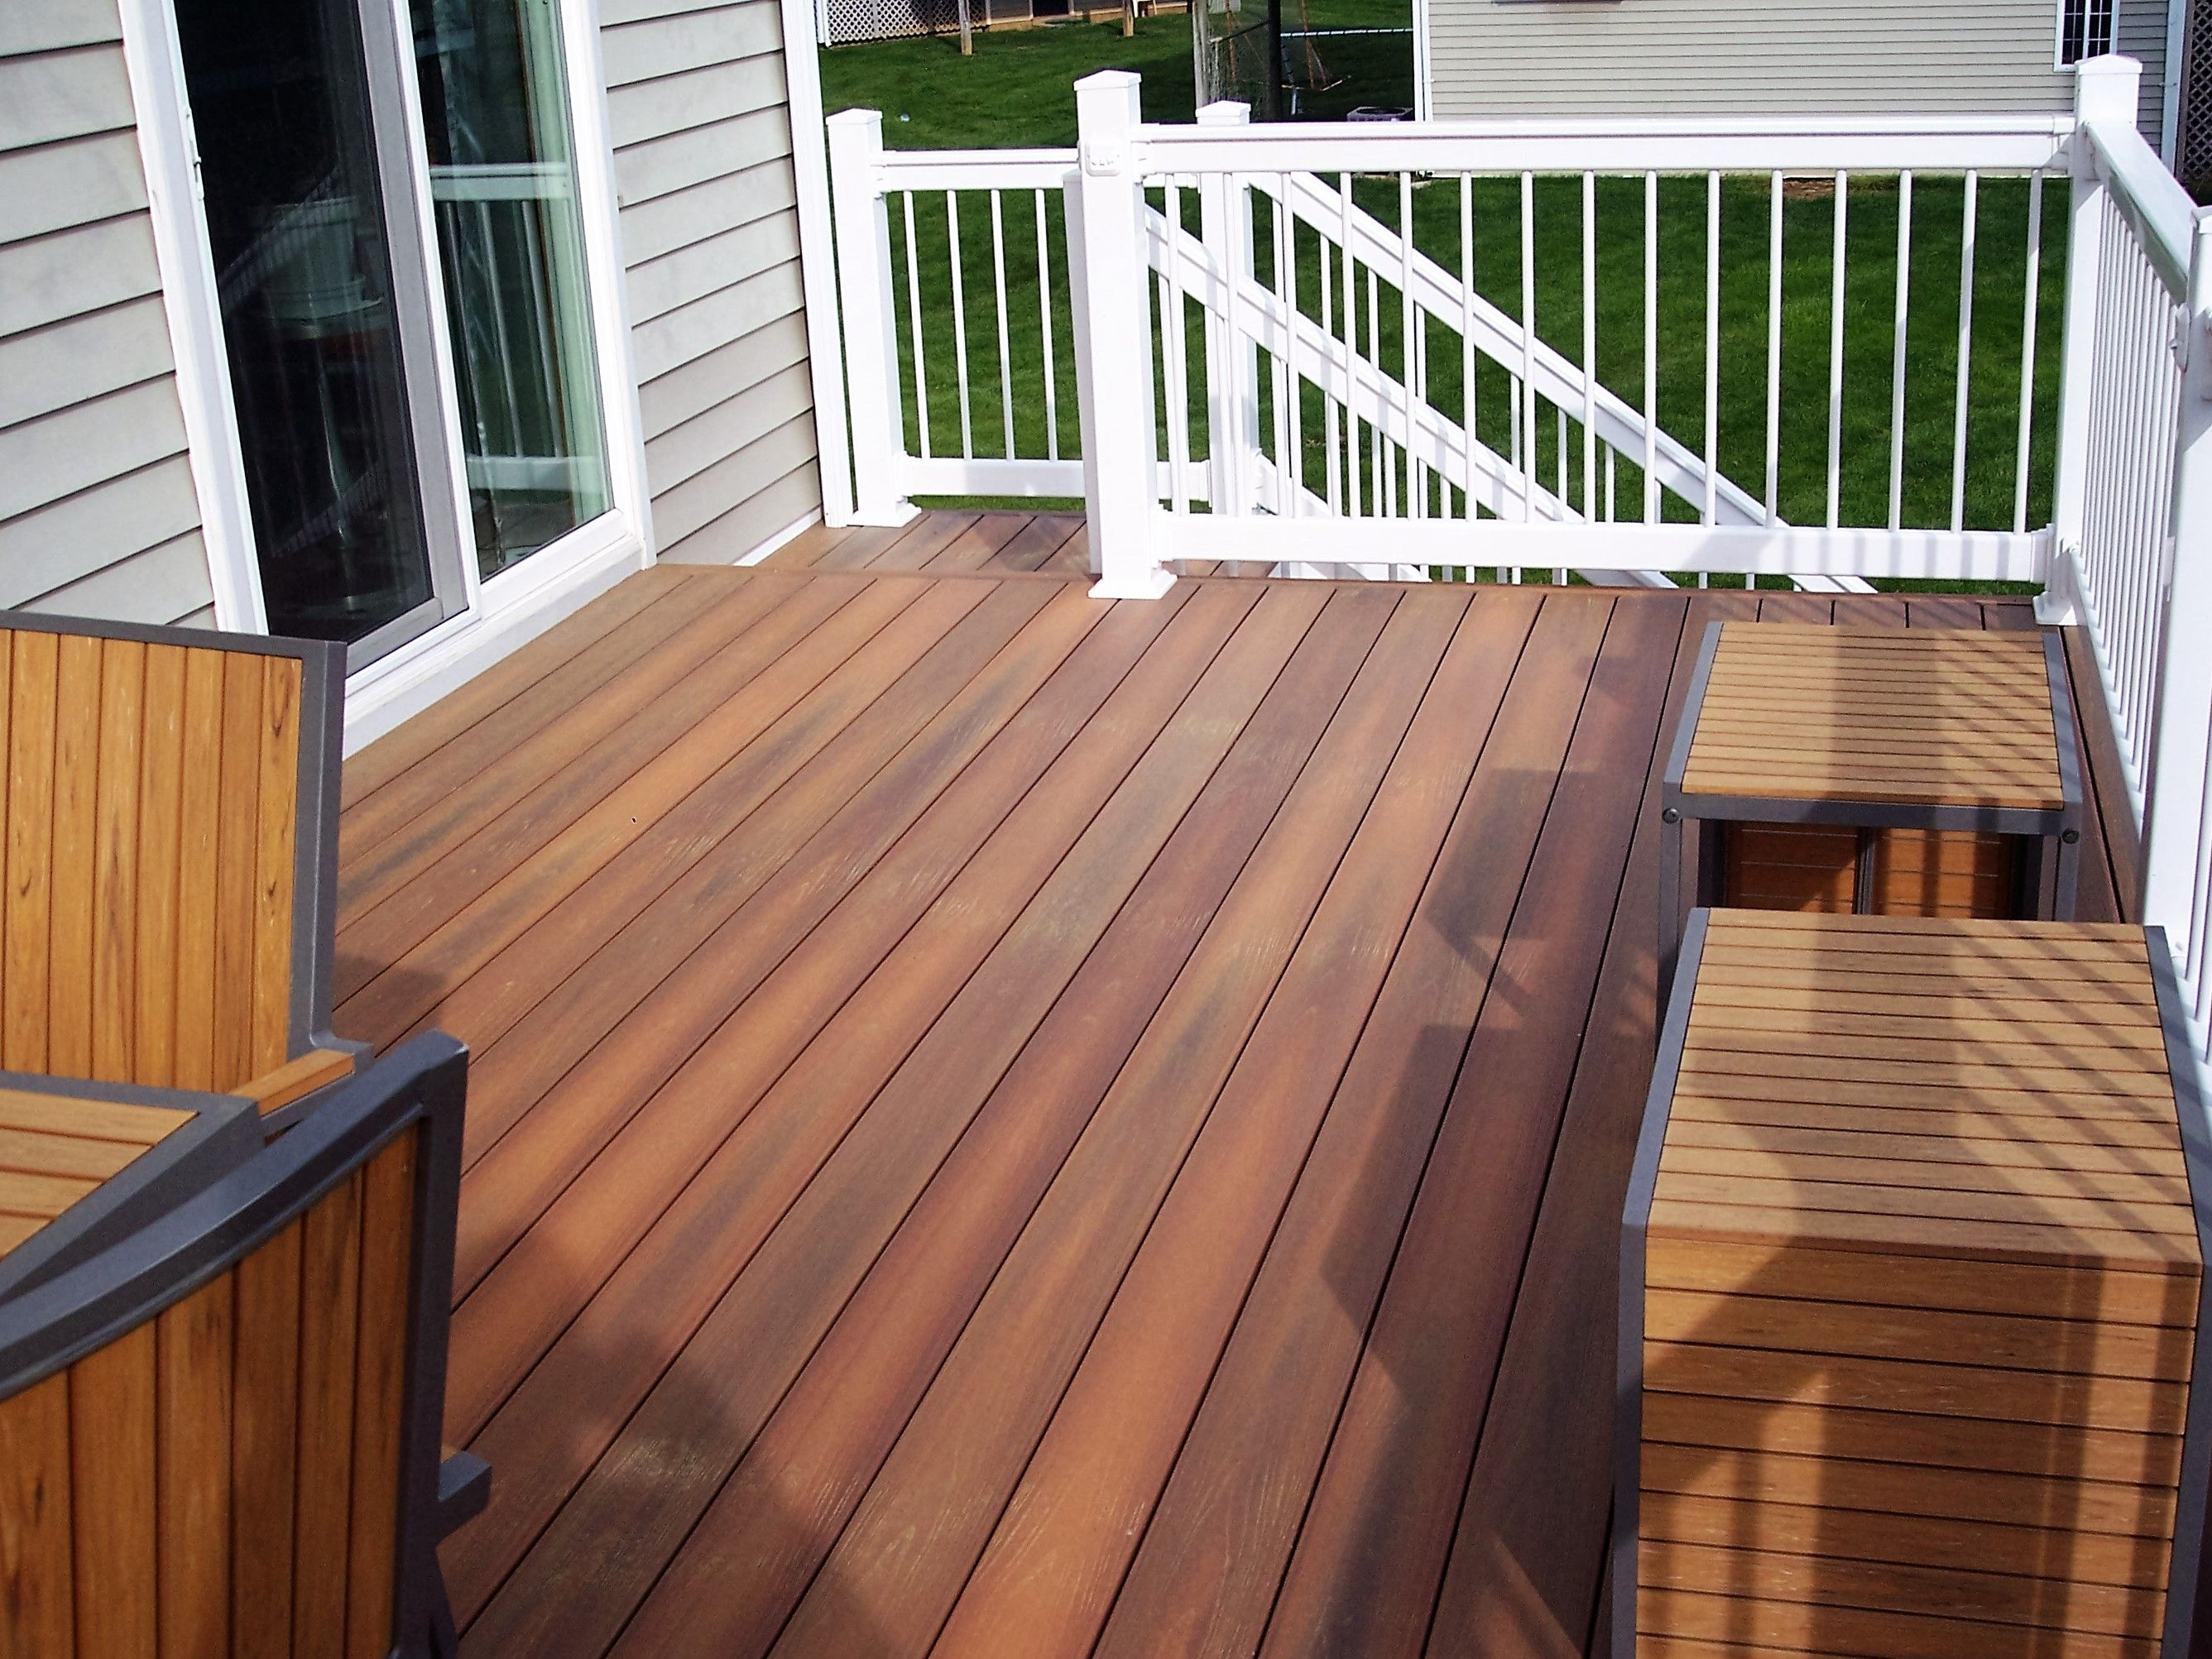 Fiberon ipe decking with white vinyl rails decks for Fiberon ipe decking prices